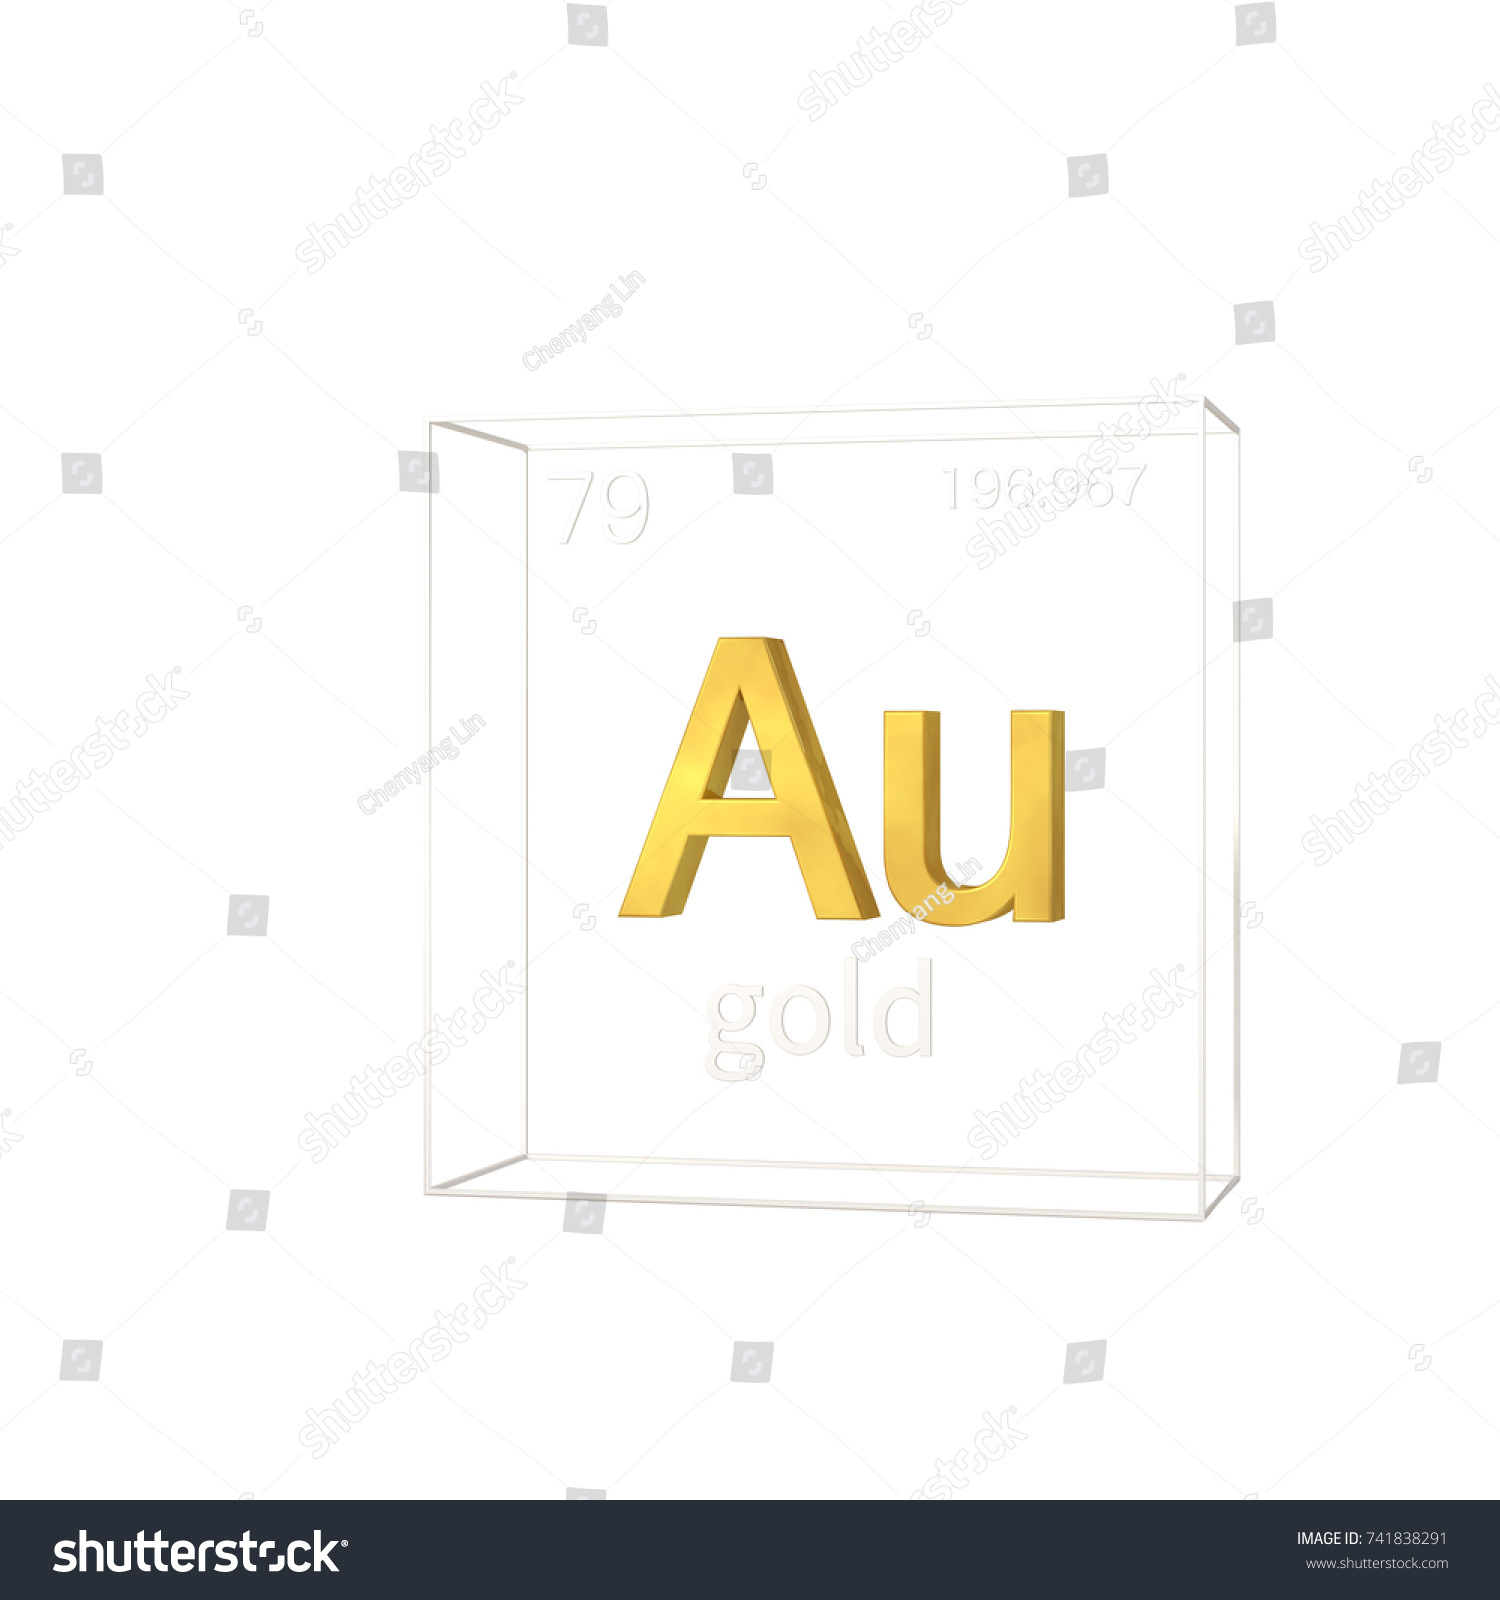 Periodic table for gold choice image periodic table images periodic table for gold choice image periodic table images periodic table for gold images periodic table gamestrikefo Image collections